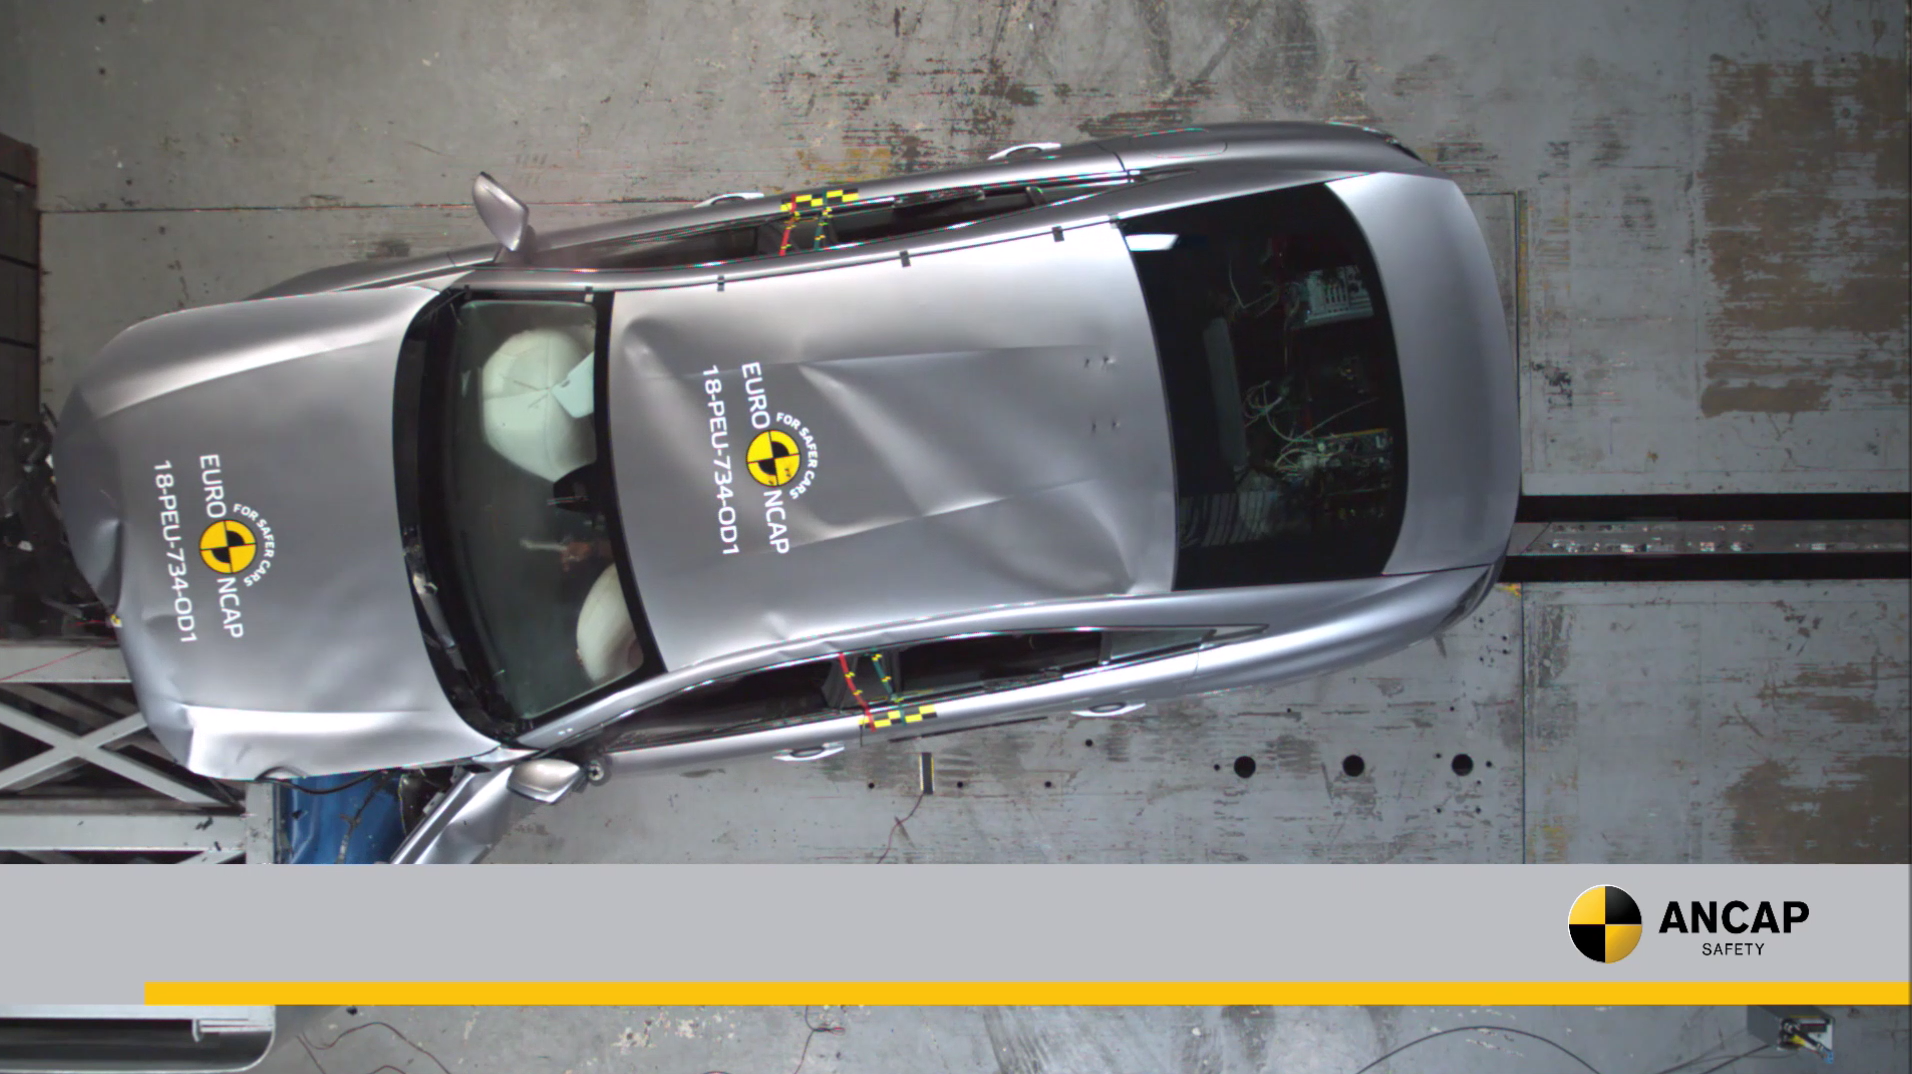 The Peugeot 508 Fastback and Sportswagon scored well in all assessment areas including the more critical emergency lane keeping scenarios which are assessed as part of lane support functionality.